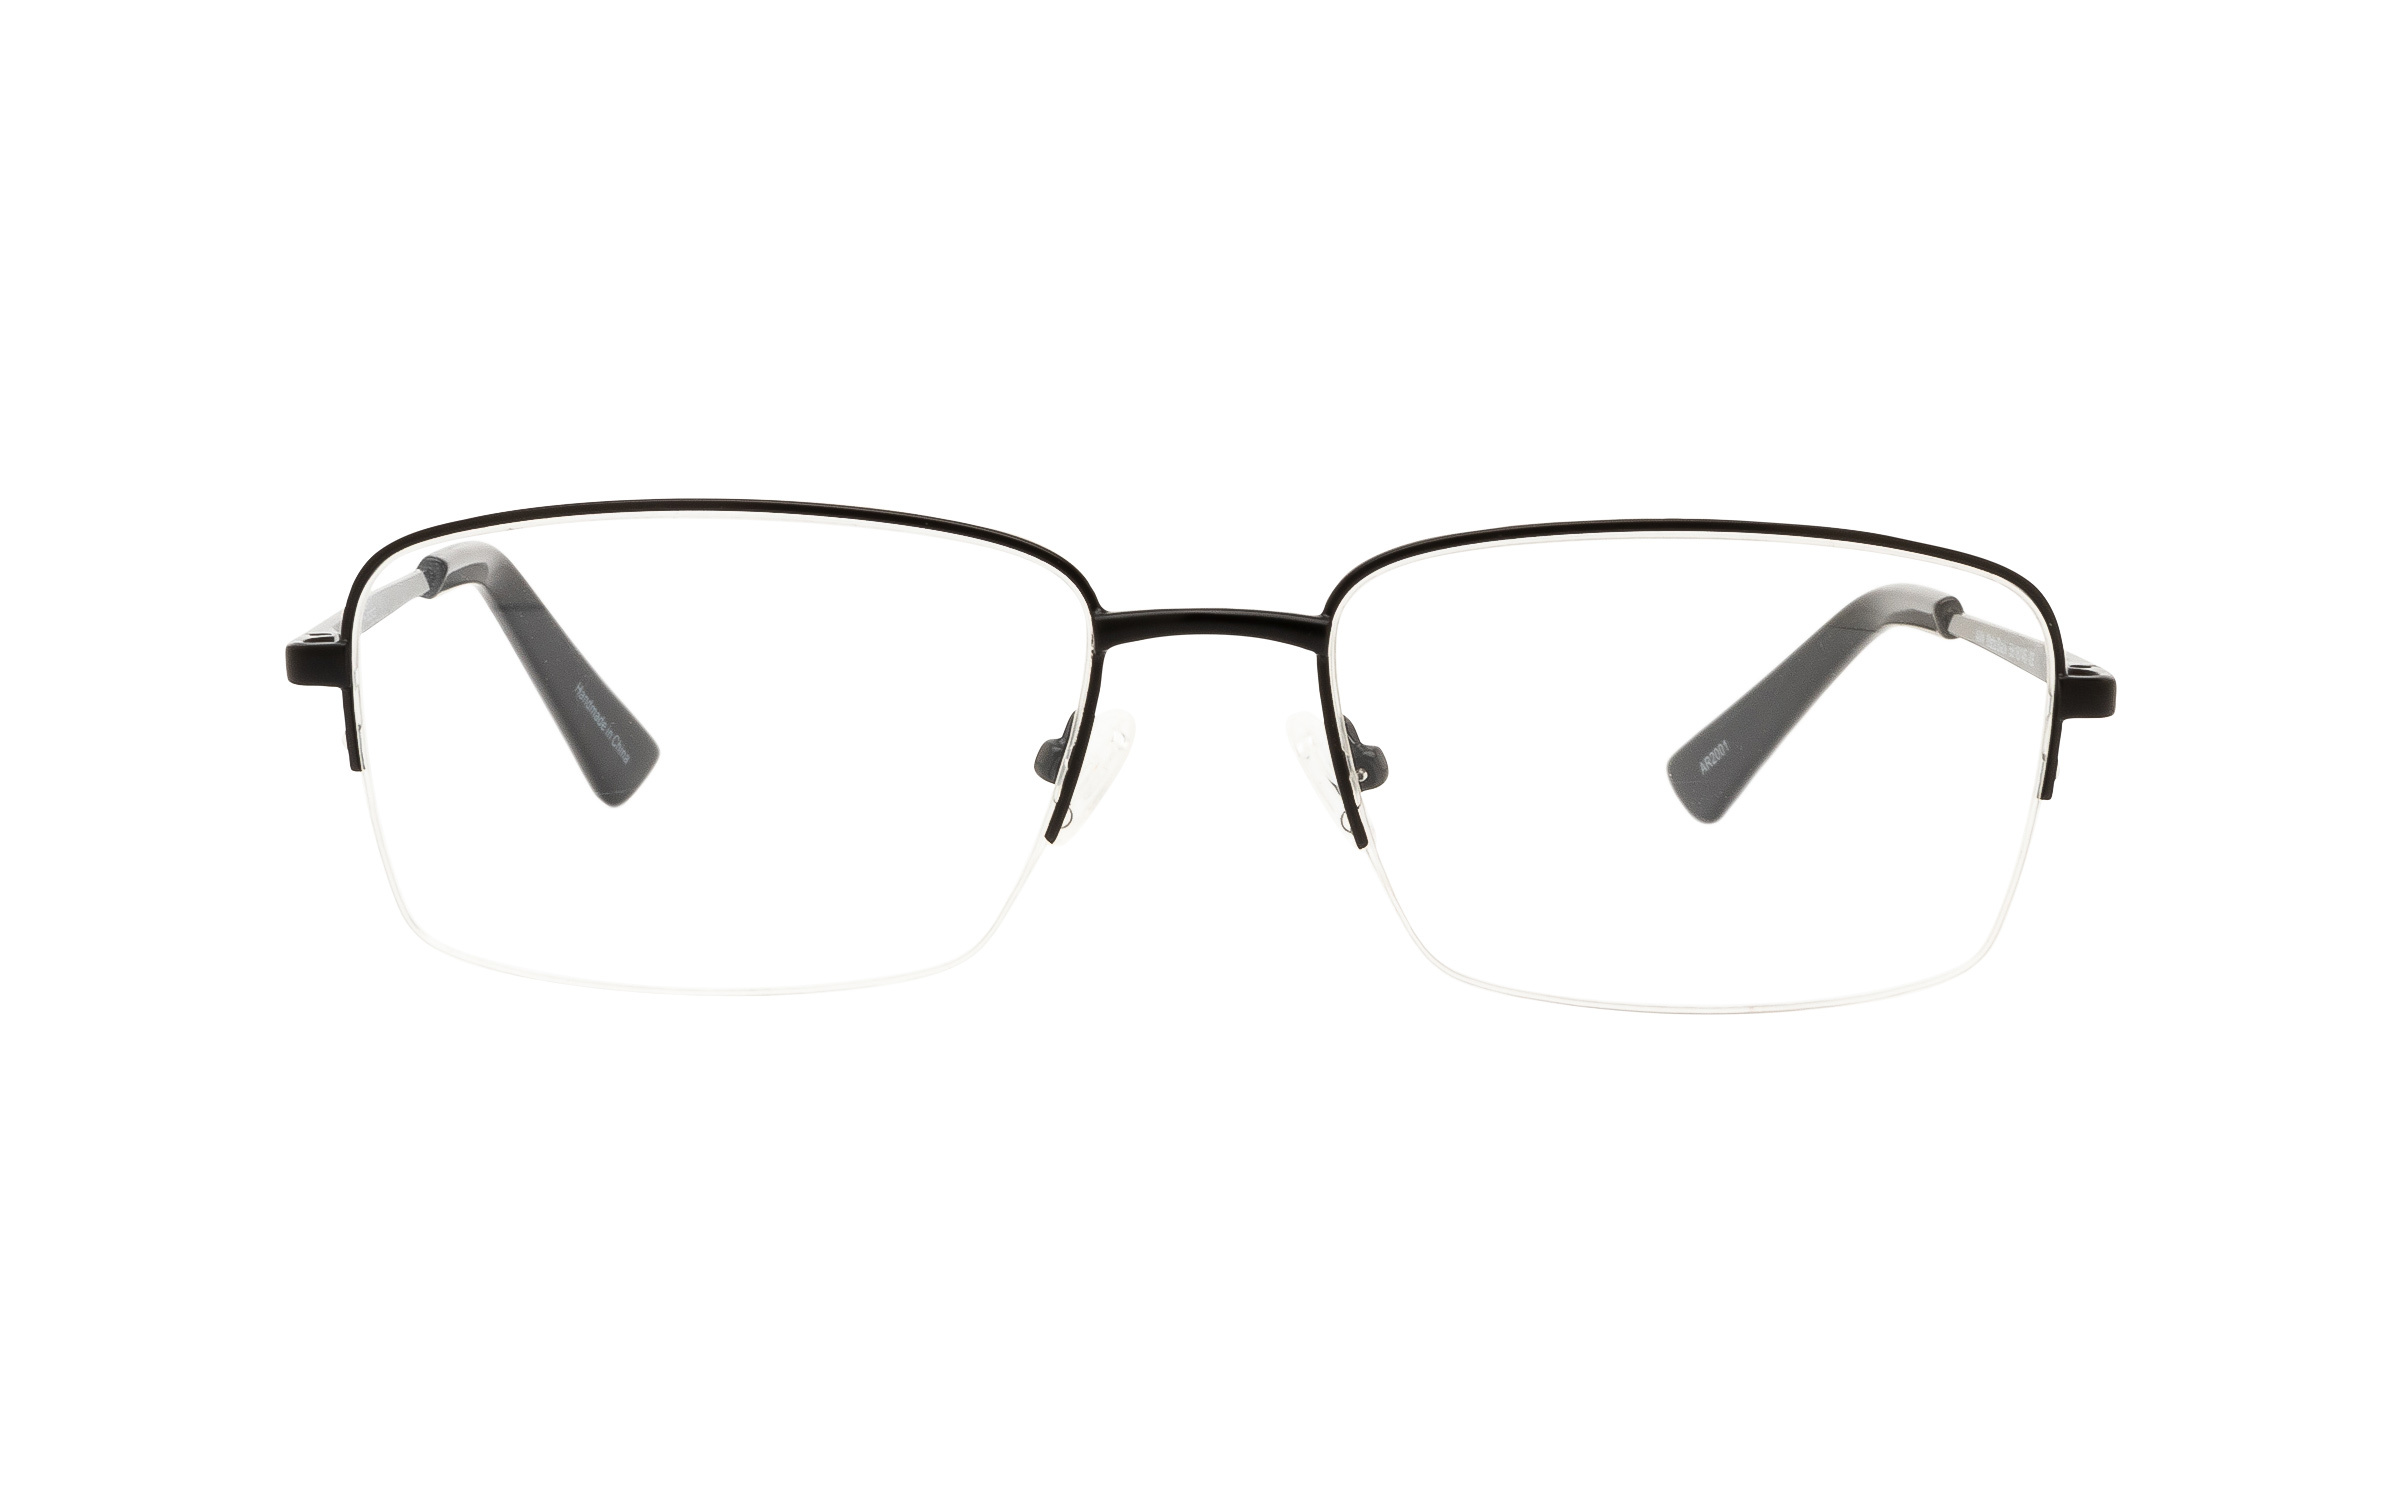 http://www.coastal.com/ - Clearly Basics Aillik CLS061 C01 (58) Eyeglasses and Frame in Matte Black – Online Coastal